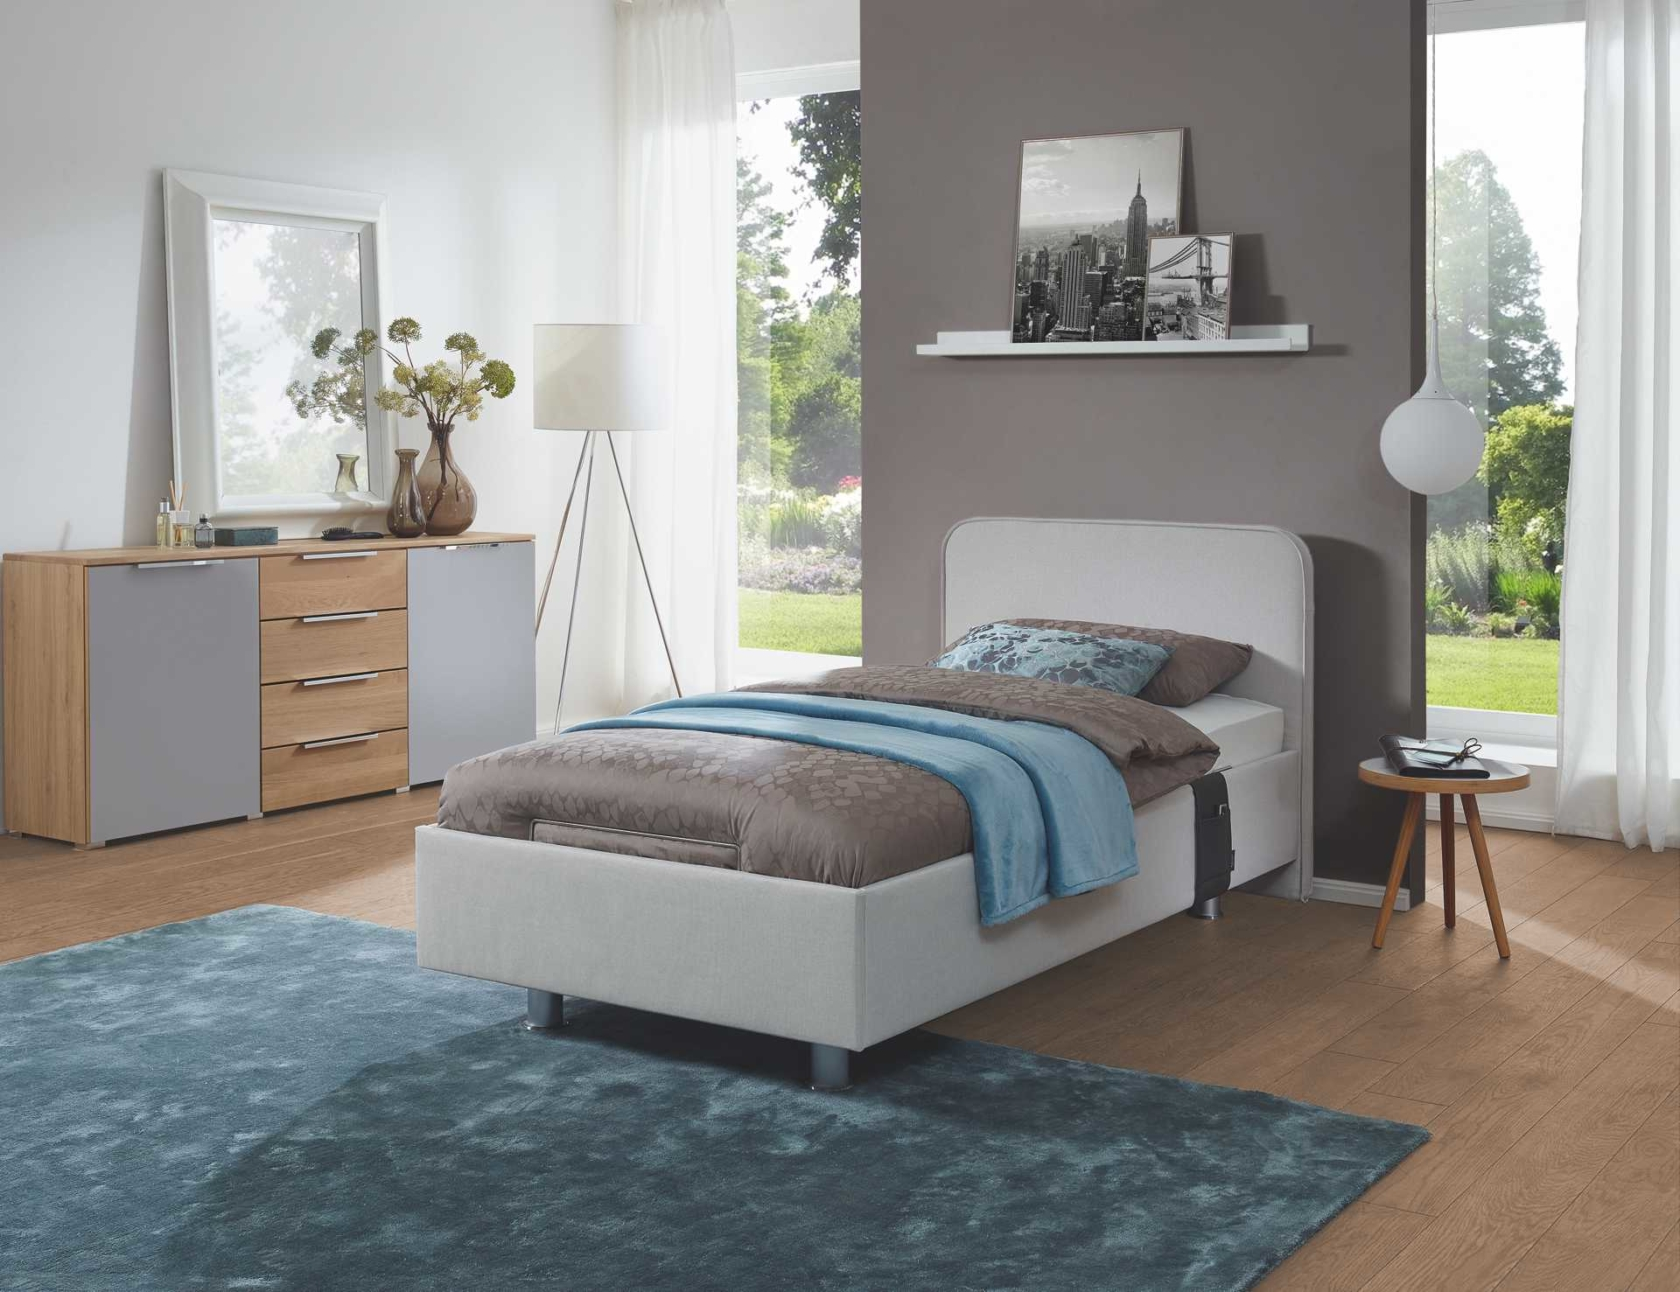 senioren pflegebetten betten winkler. Black Bedroom Furniture Sets. Home Design Ideas